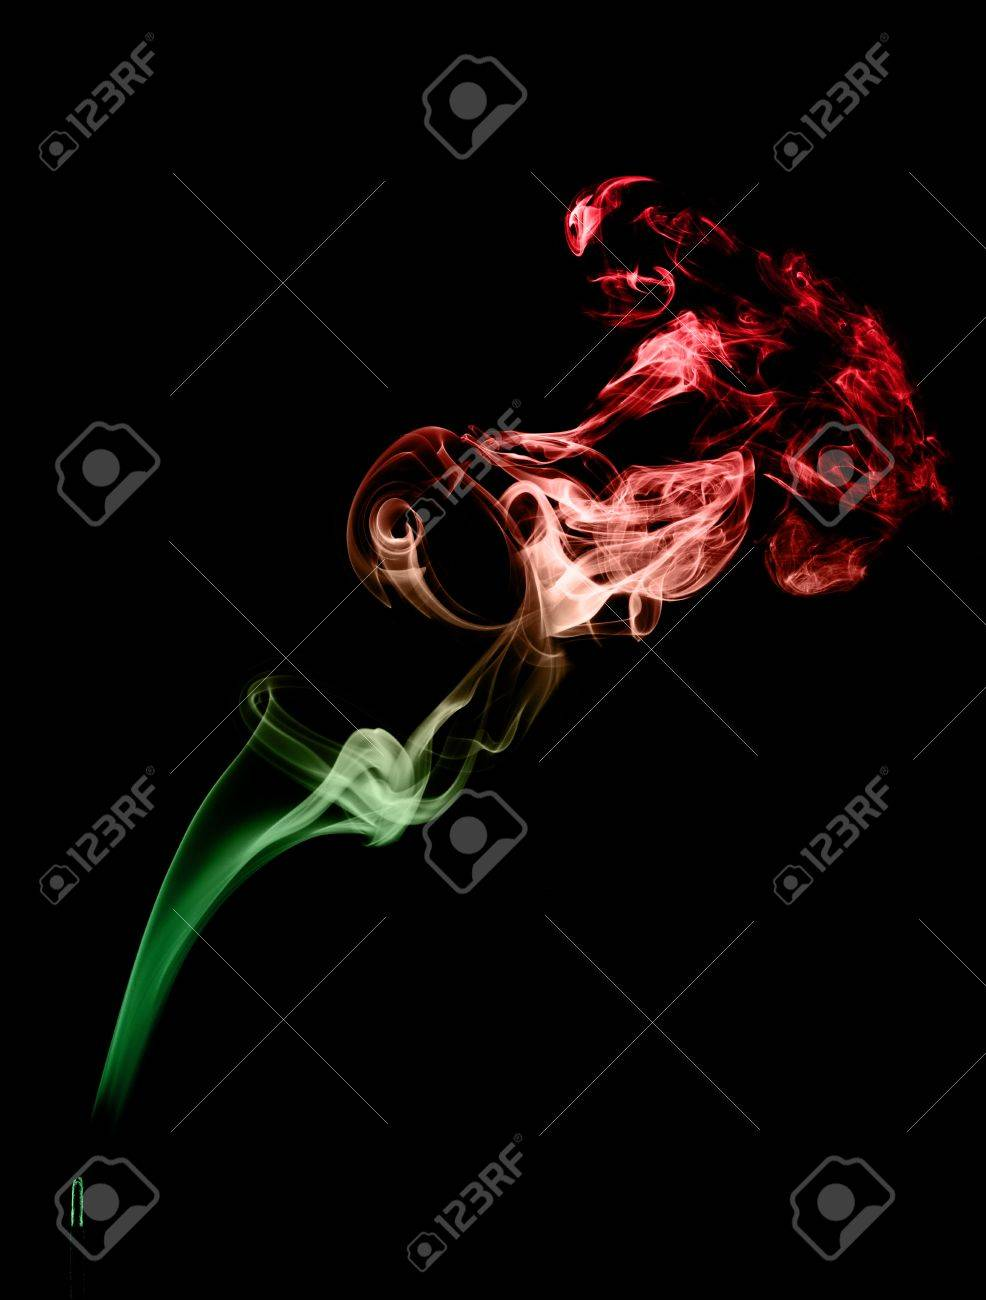 Smoke art with black background in toned color Stock Photo - 17200820